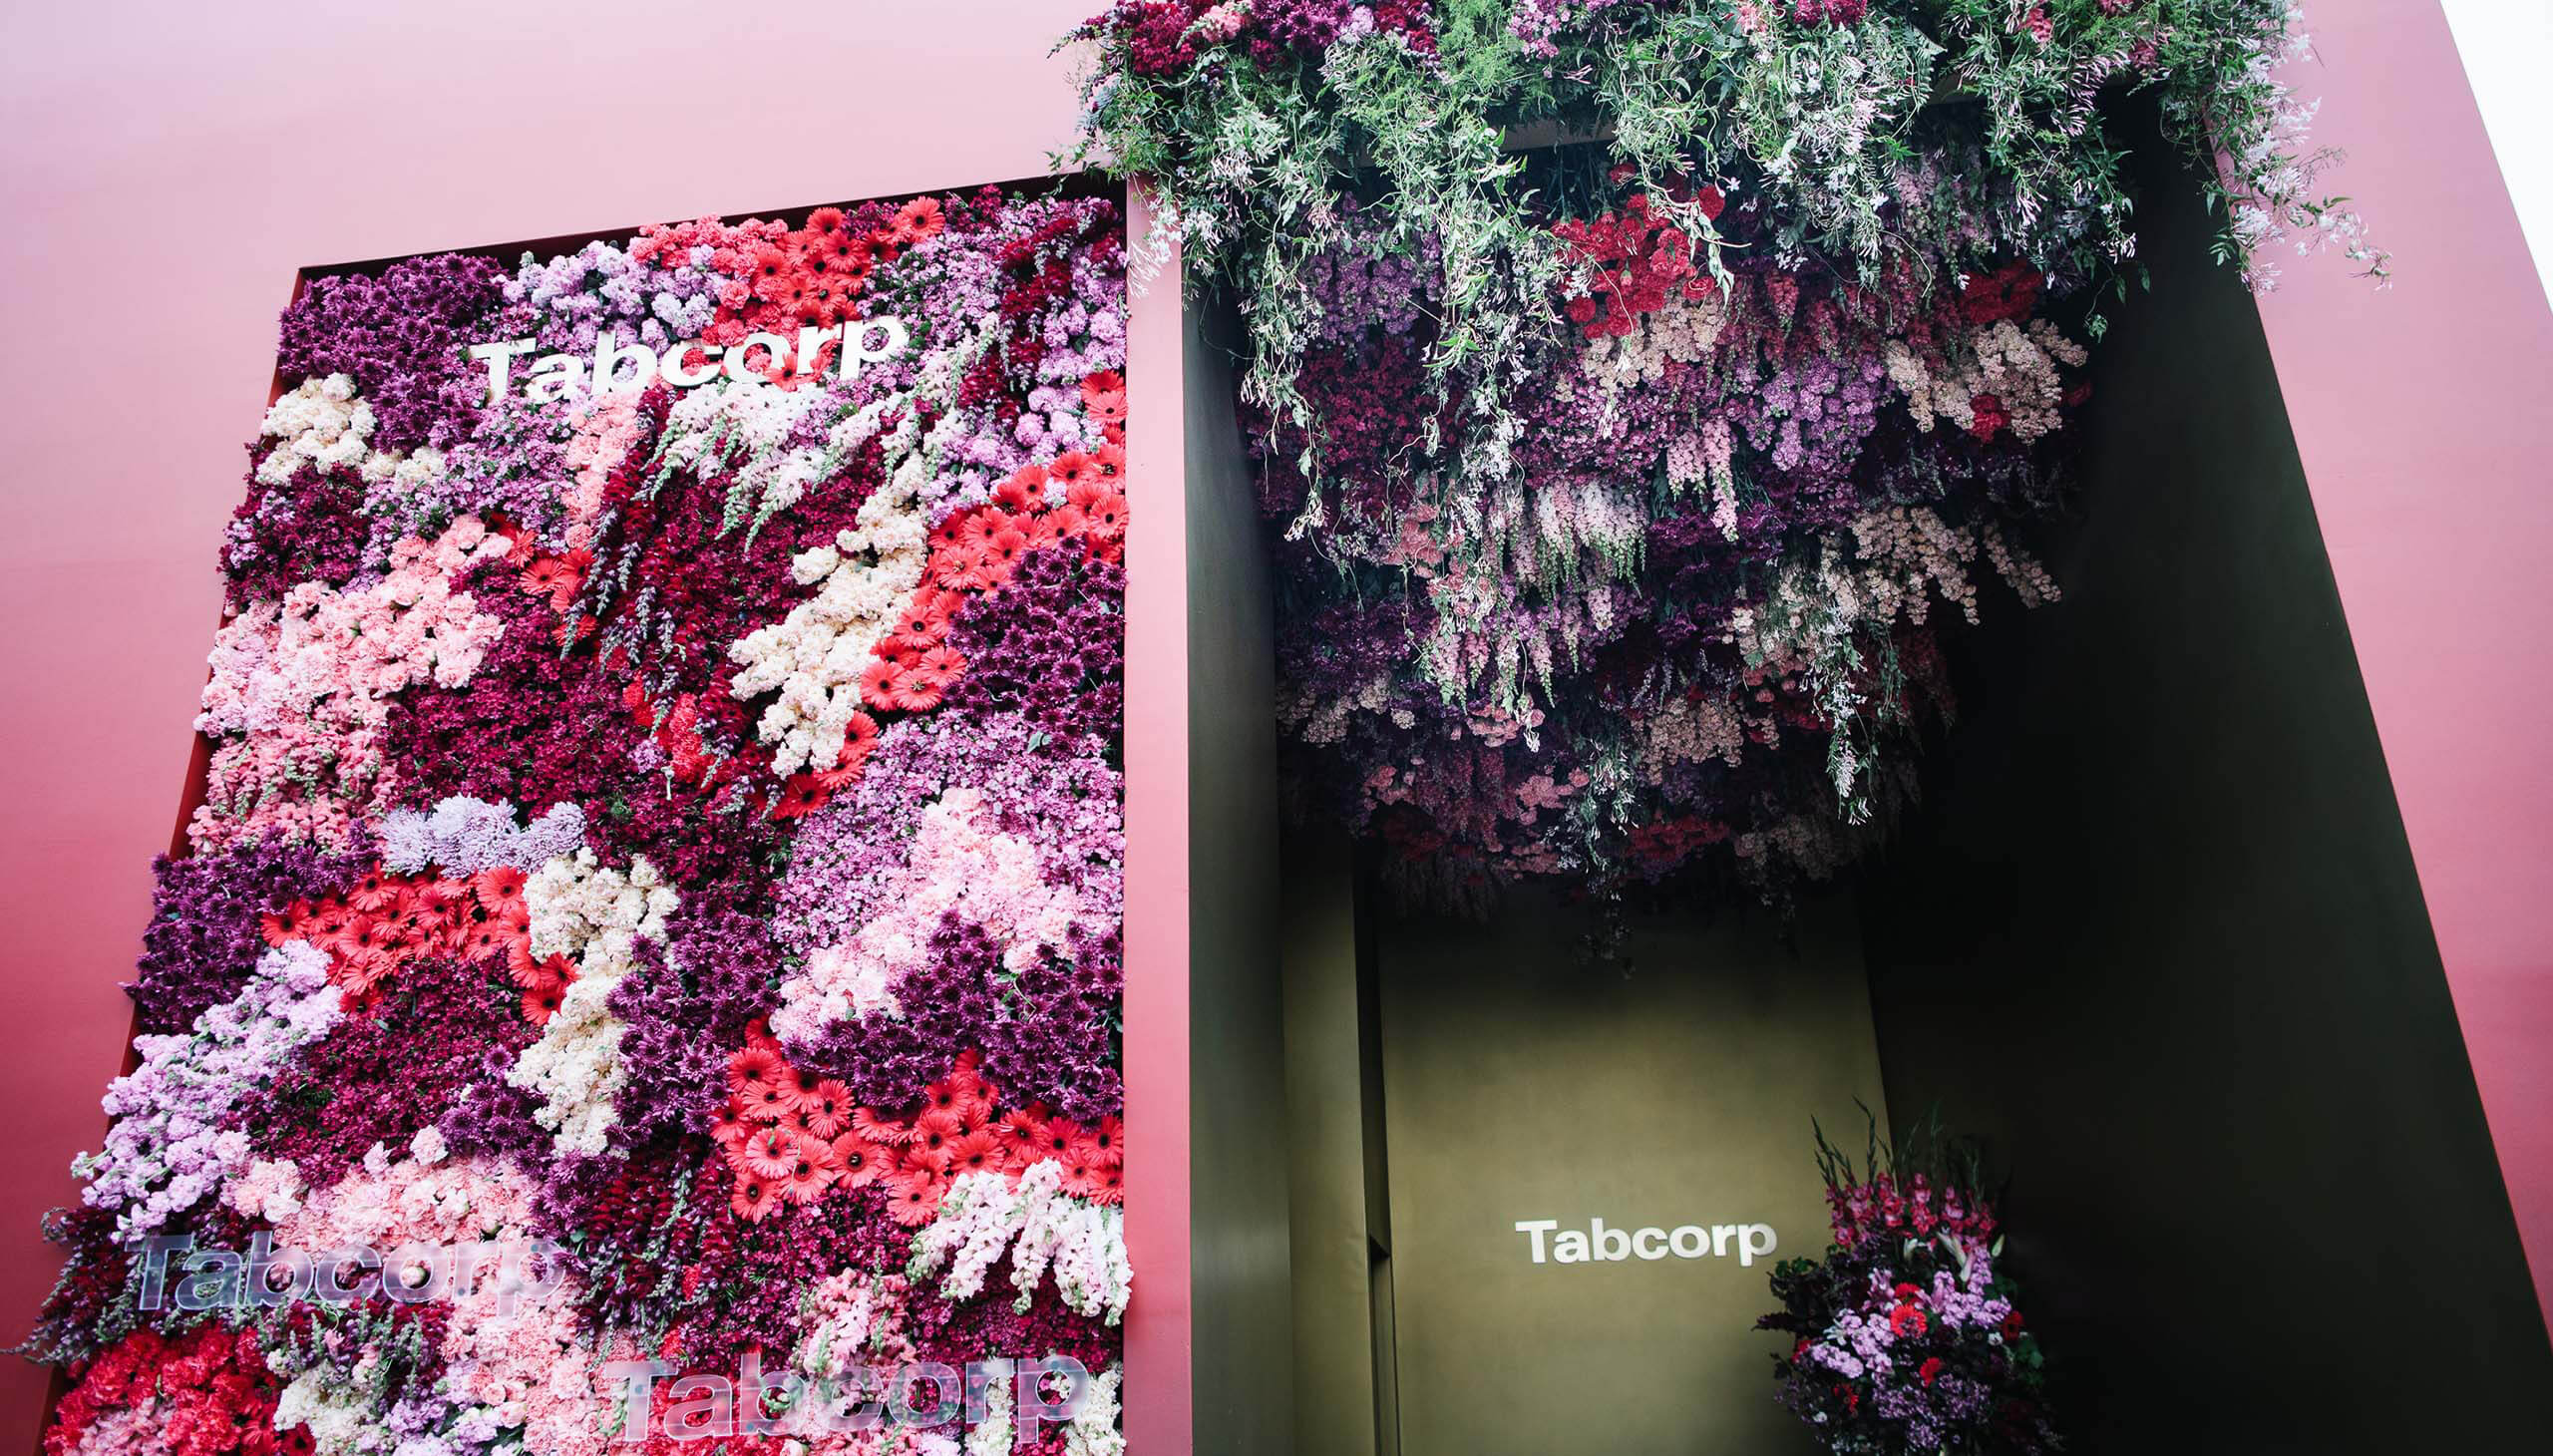 Floral display at entrance to Tabcorp marquee